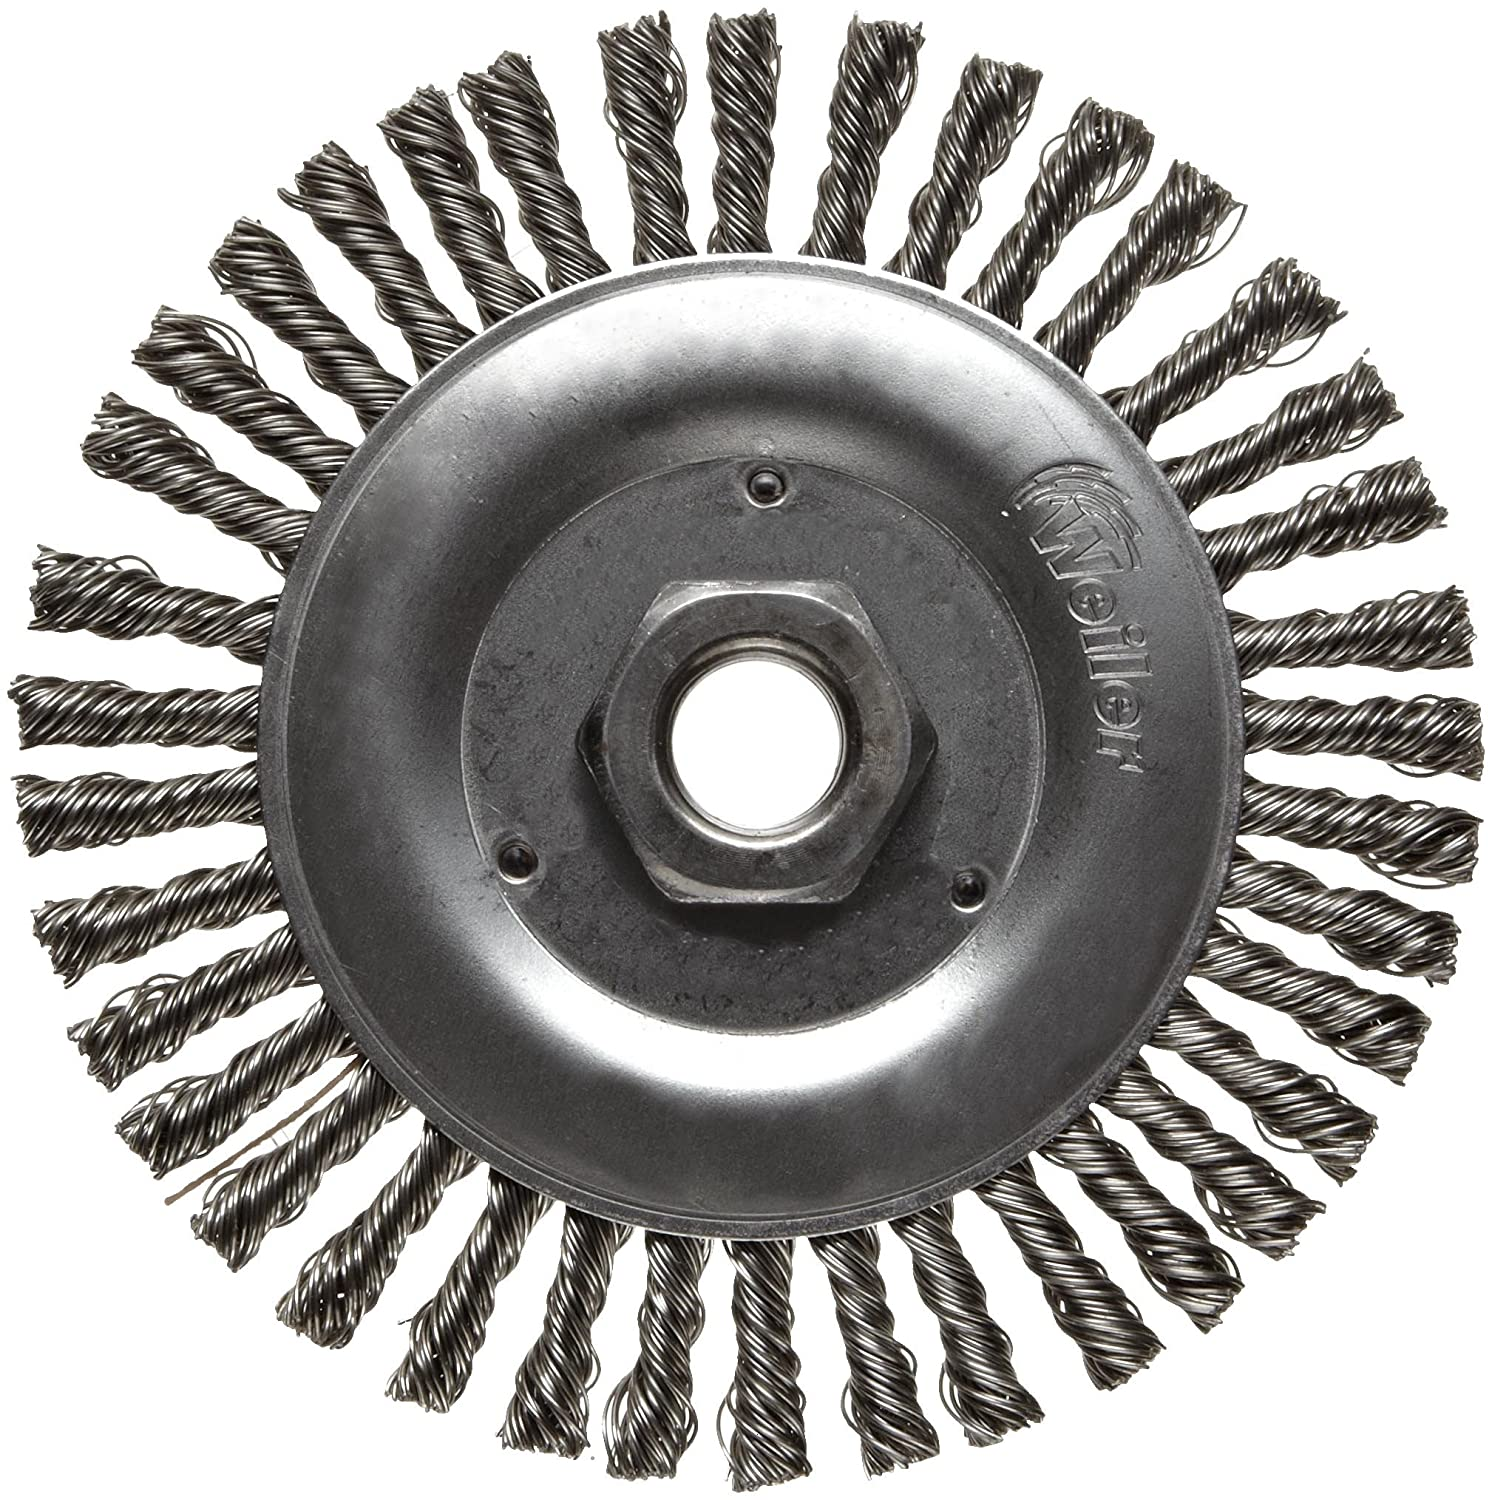 Weiler Dualife Narrow Face Wire Wheel Brush, Threaded Hole, Stainless Steel 302, Stringer Knotted, 5' Diameter, 0.020' Wire Diameter, 5/8-11' Arbor, 7/8' Bristle Length, 3/16' Brush Face Width, 12500 rpm 5 Diameter 0.020 Wire Diameter 5/8-11 Arbor 08806